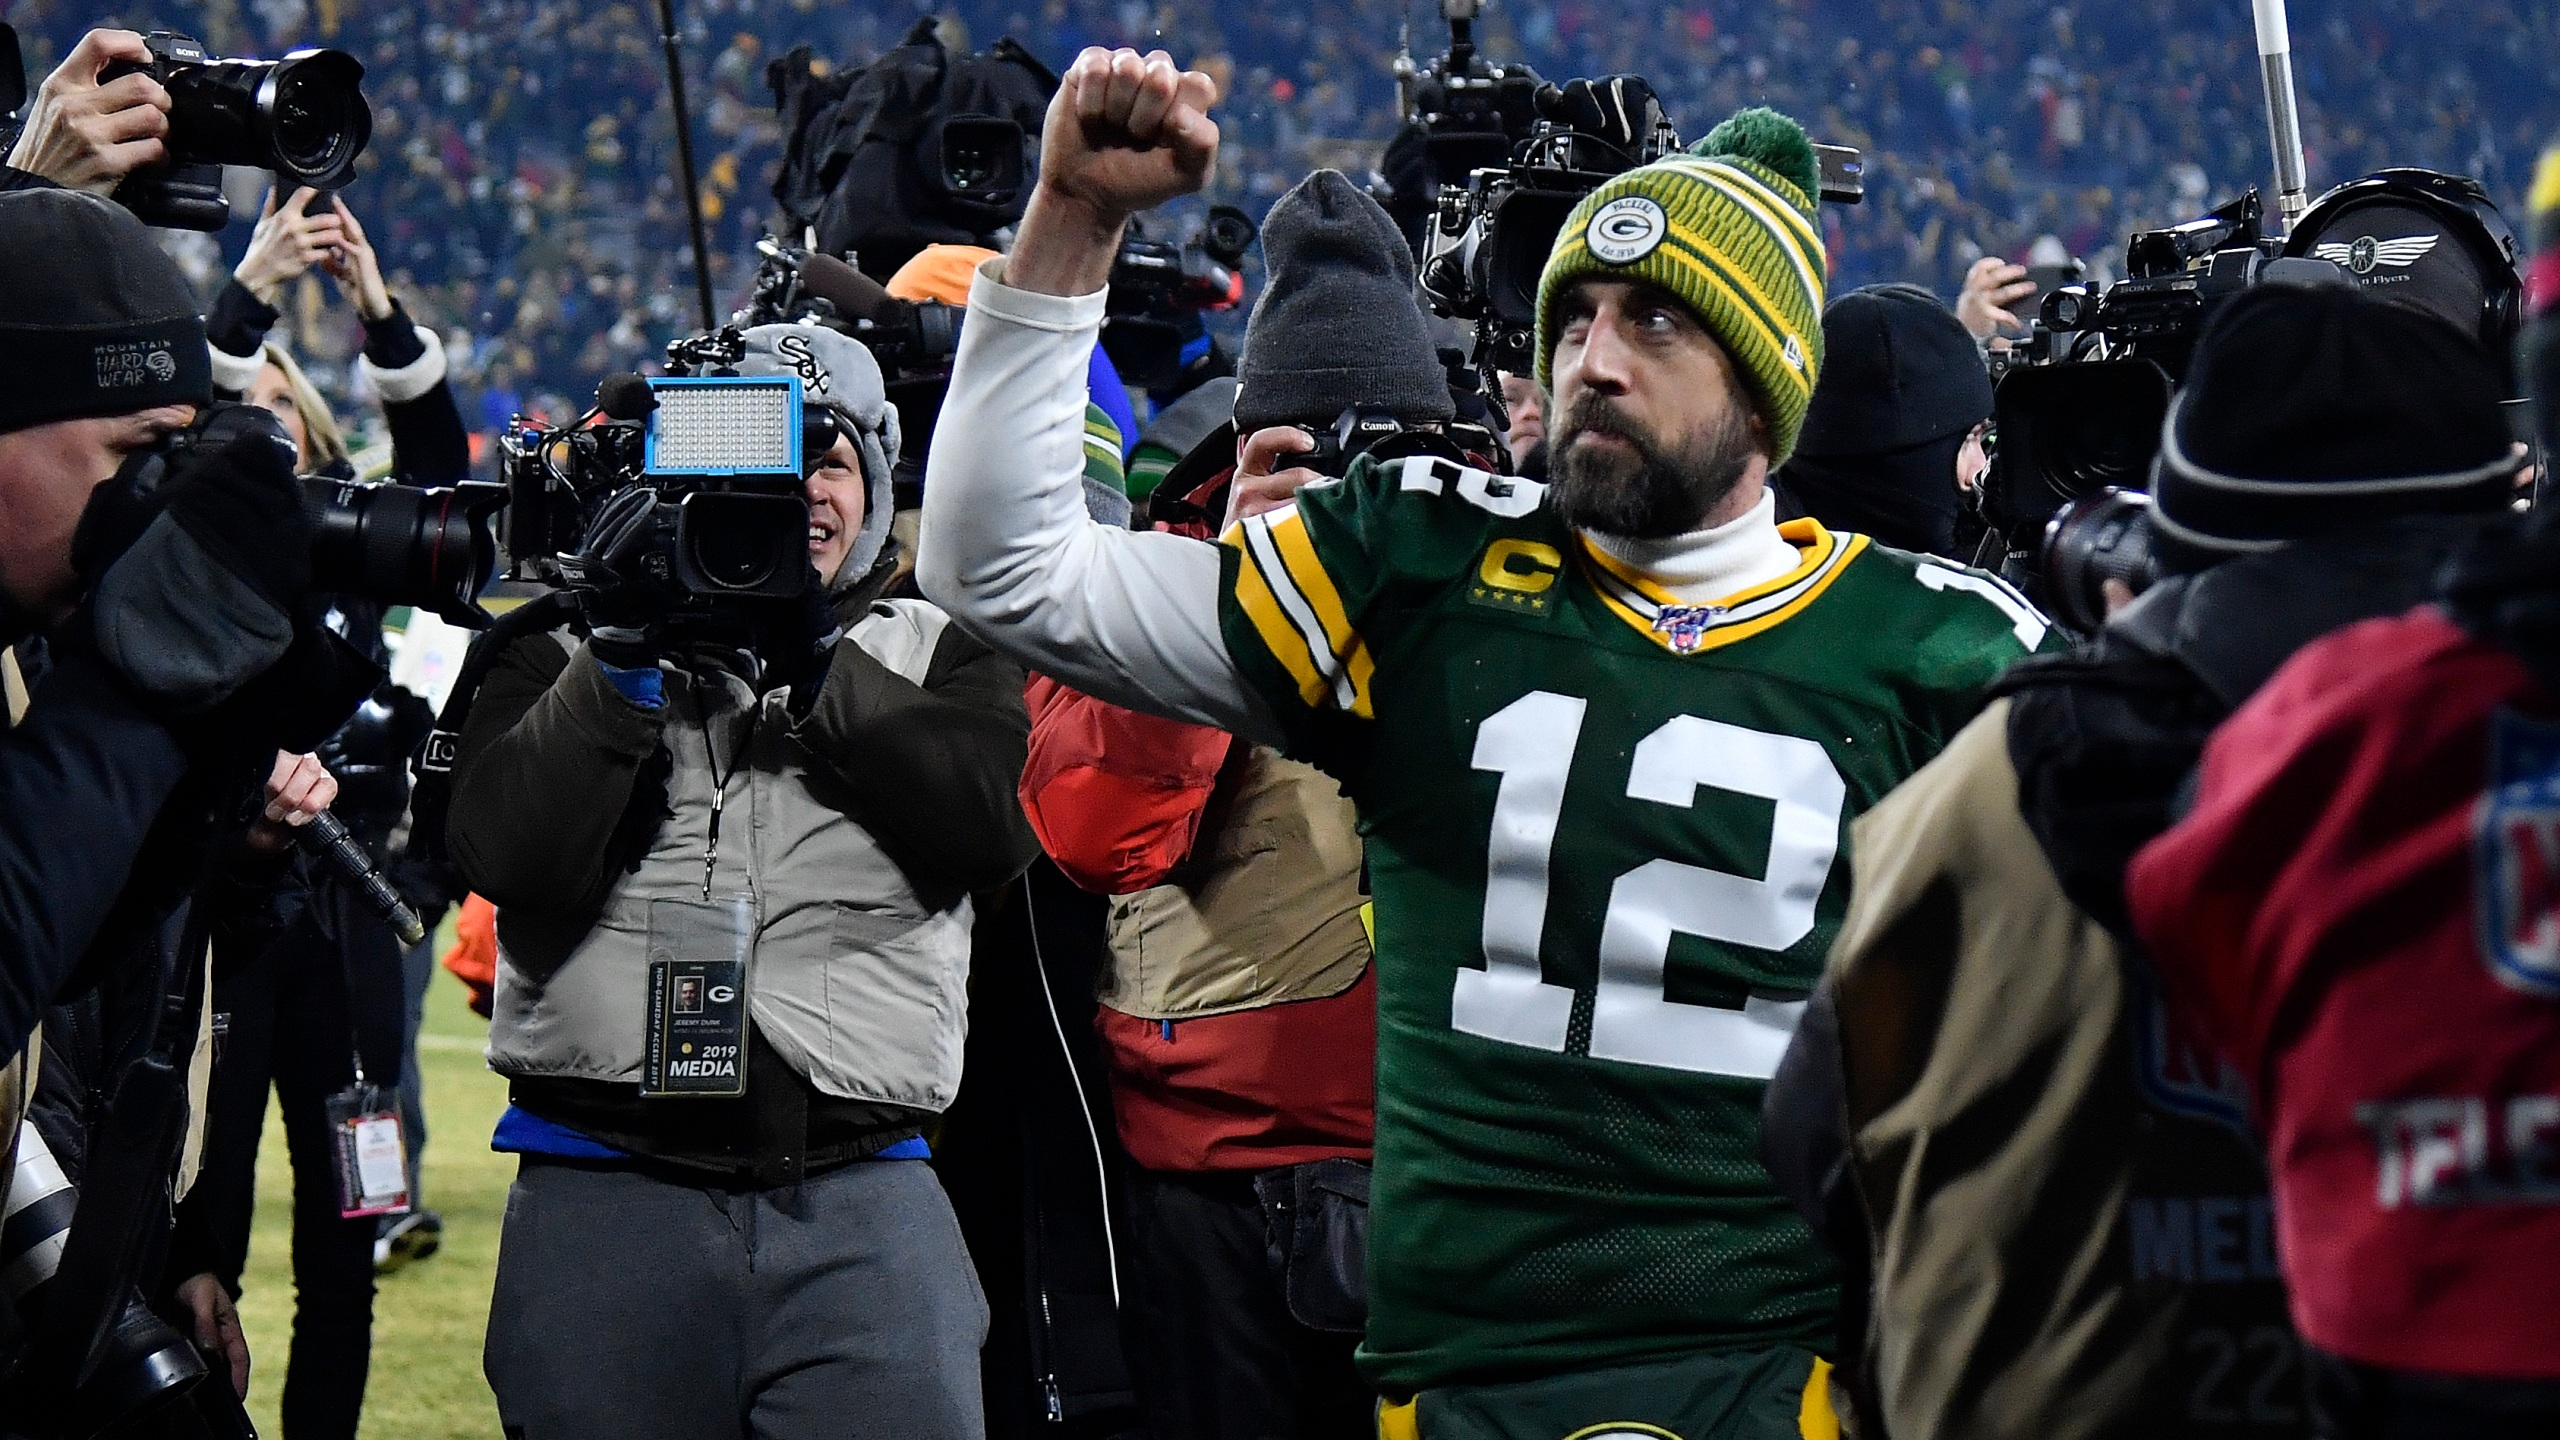 Packers Rodgers Joins All In Challenge Shows Off Quarantine Beard Wfrv Local 5 Green Bay Appleton